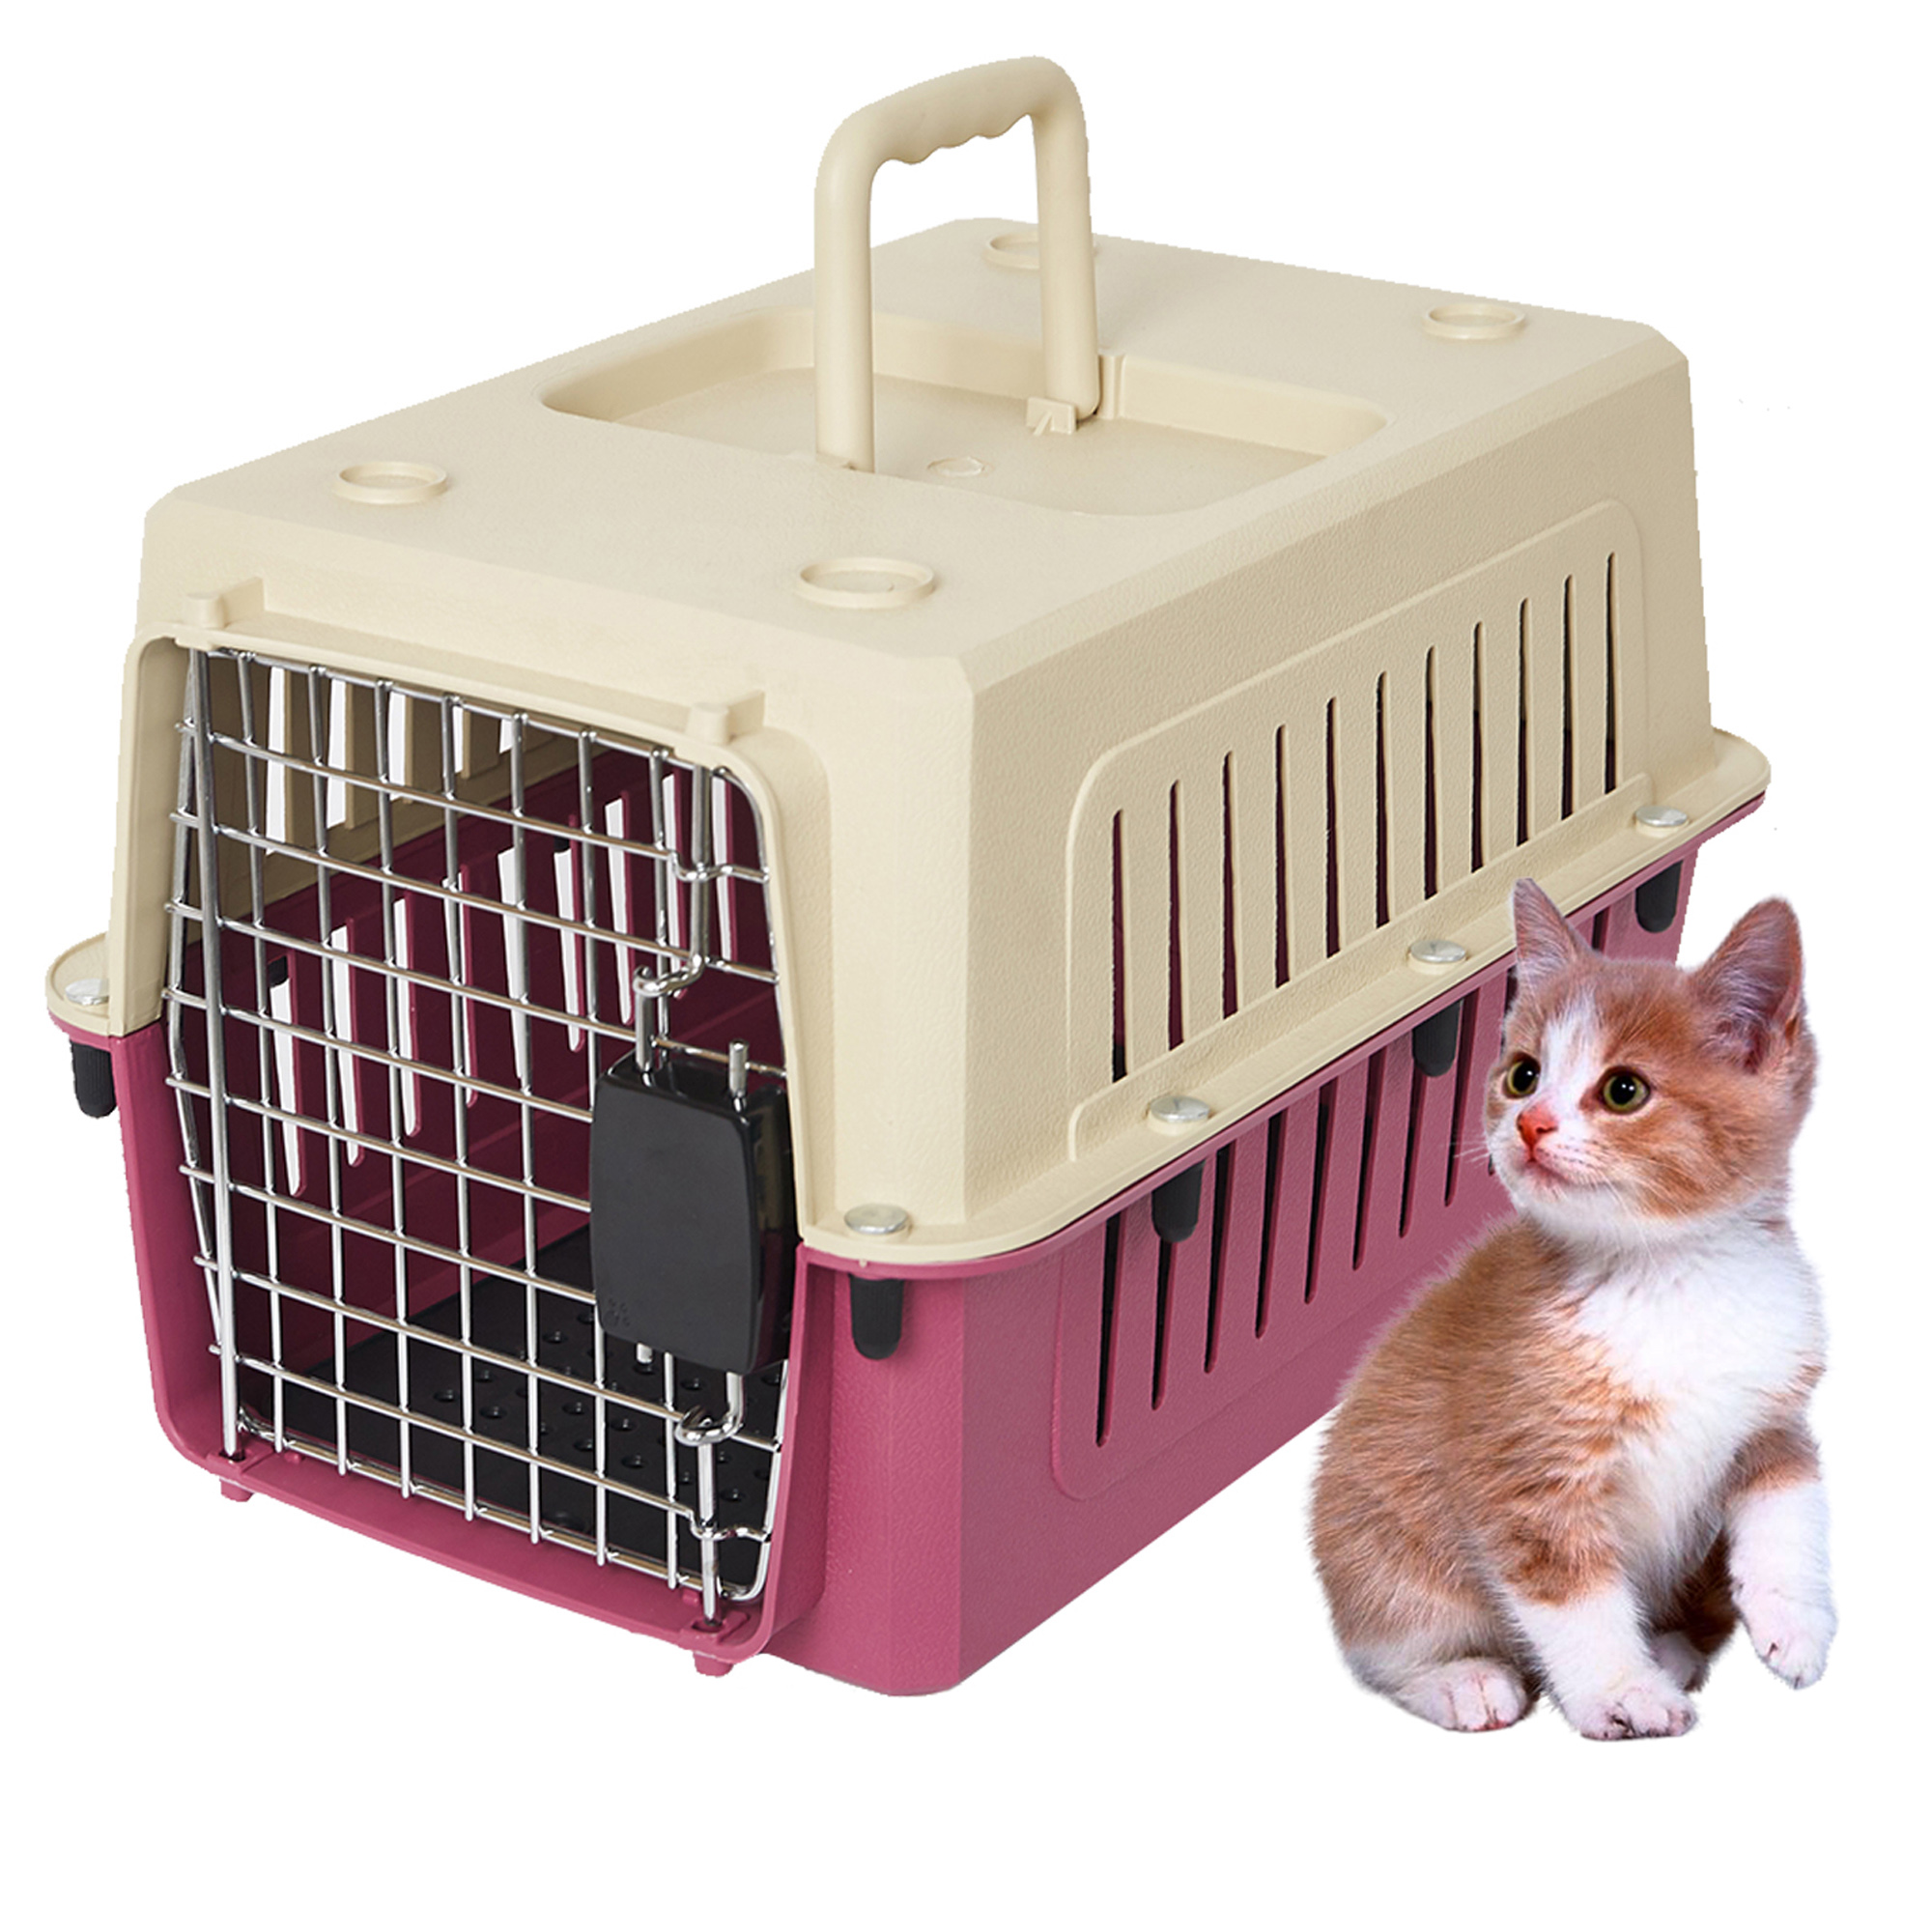 "KARMAS PRODUCT Heavy Duty Portable Kennel Plastic Cat & Dog Carrier Cage Airline Approved,L;24""x16""x16"",Red"